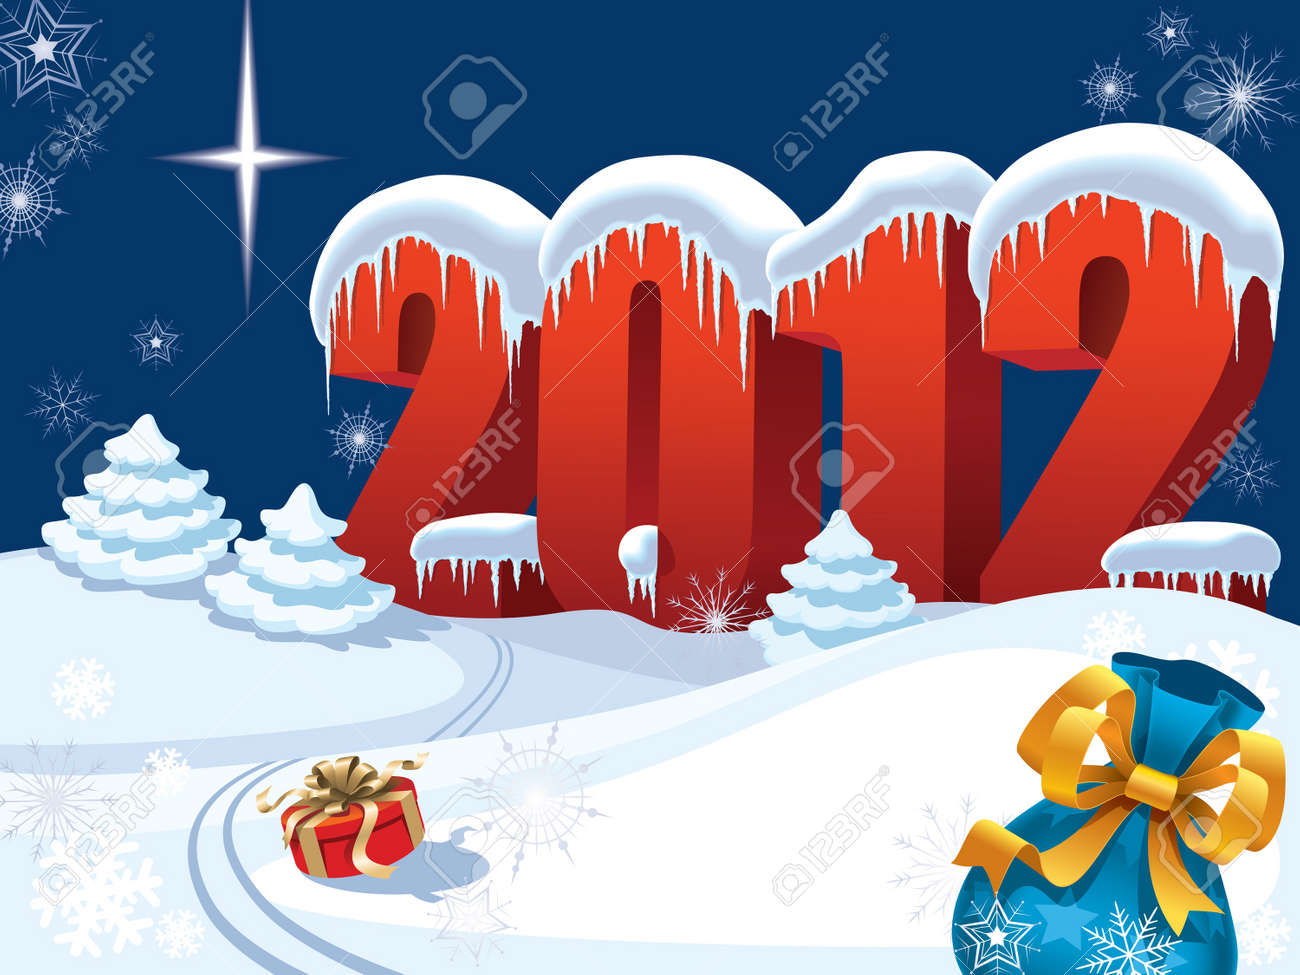 New Year night and presents lost by Santa Claus Stock Vector - 11124654